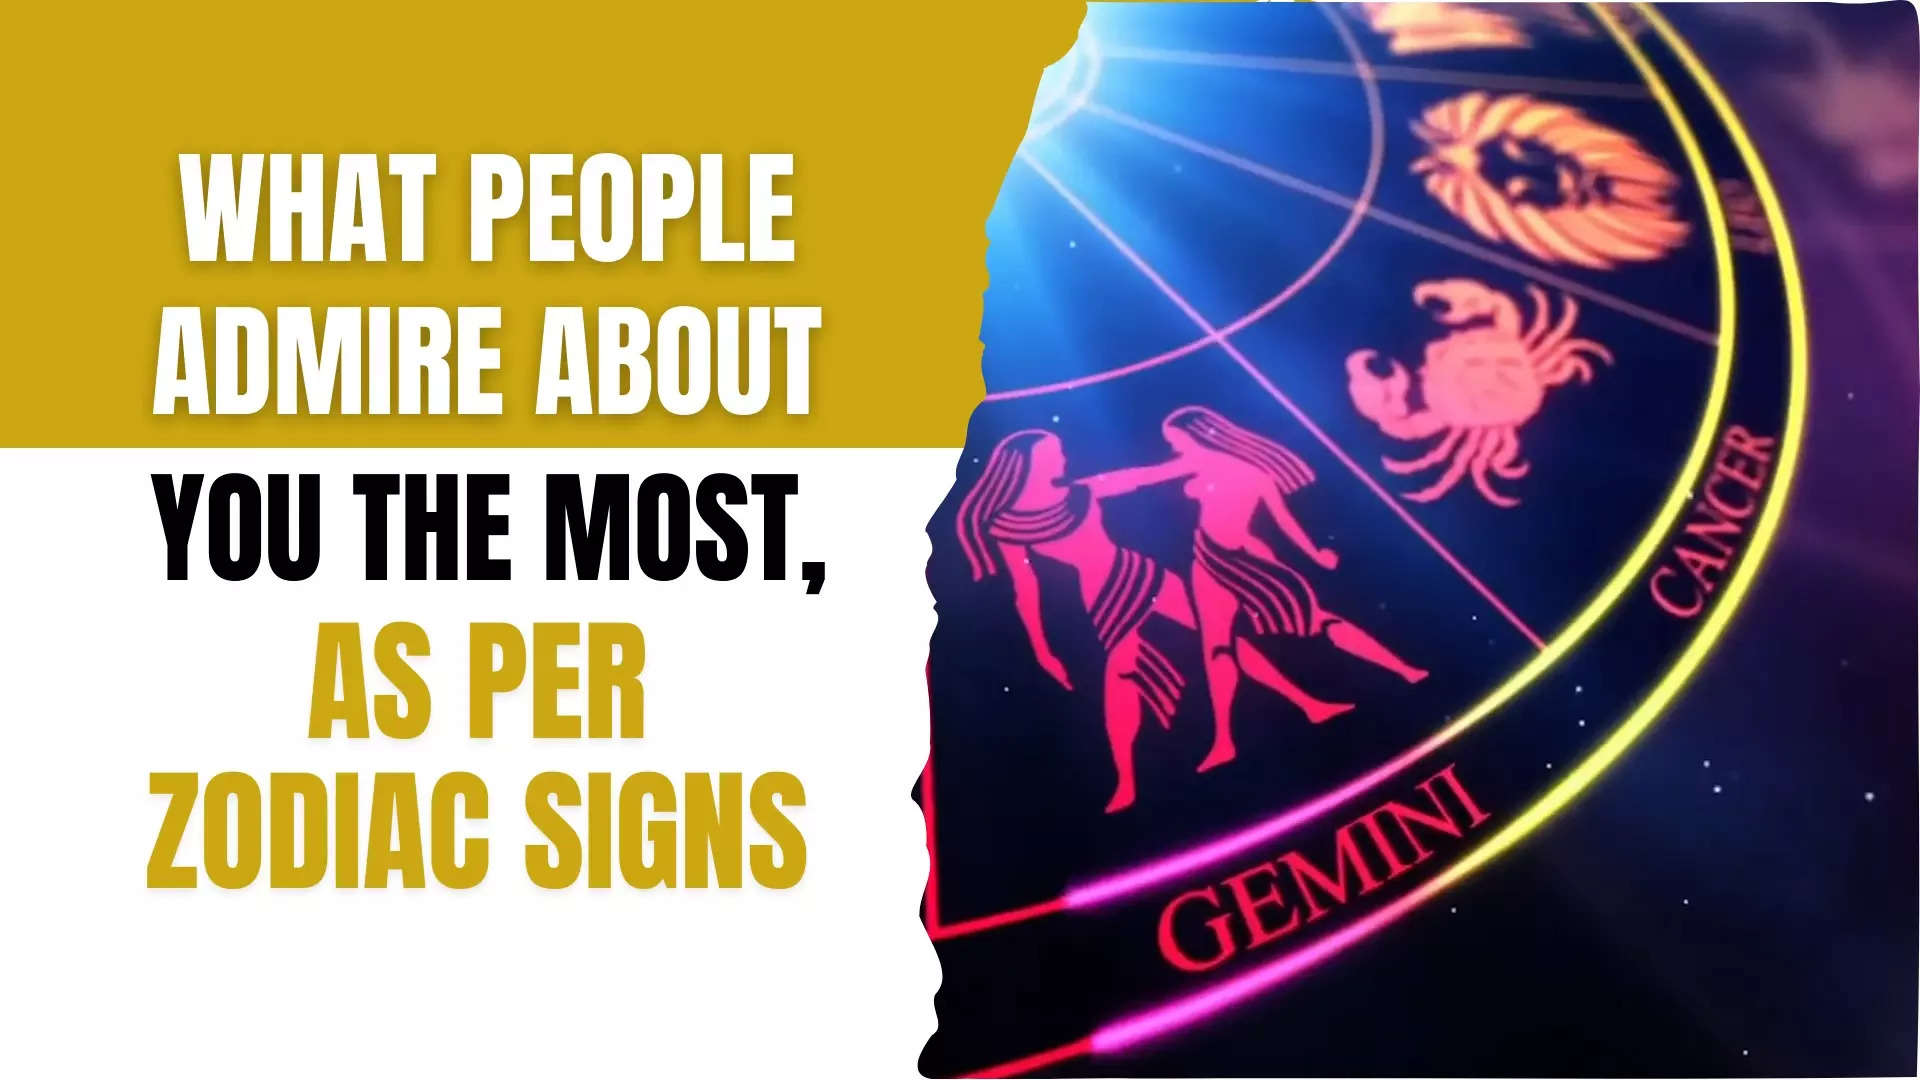 what-people-admire-about-you-the-most-as-per-zodiac-signs